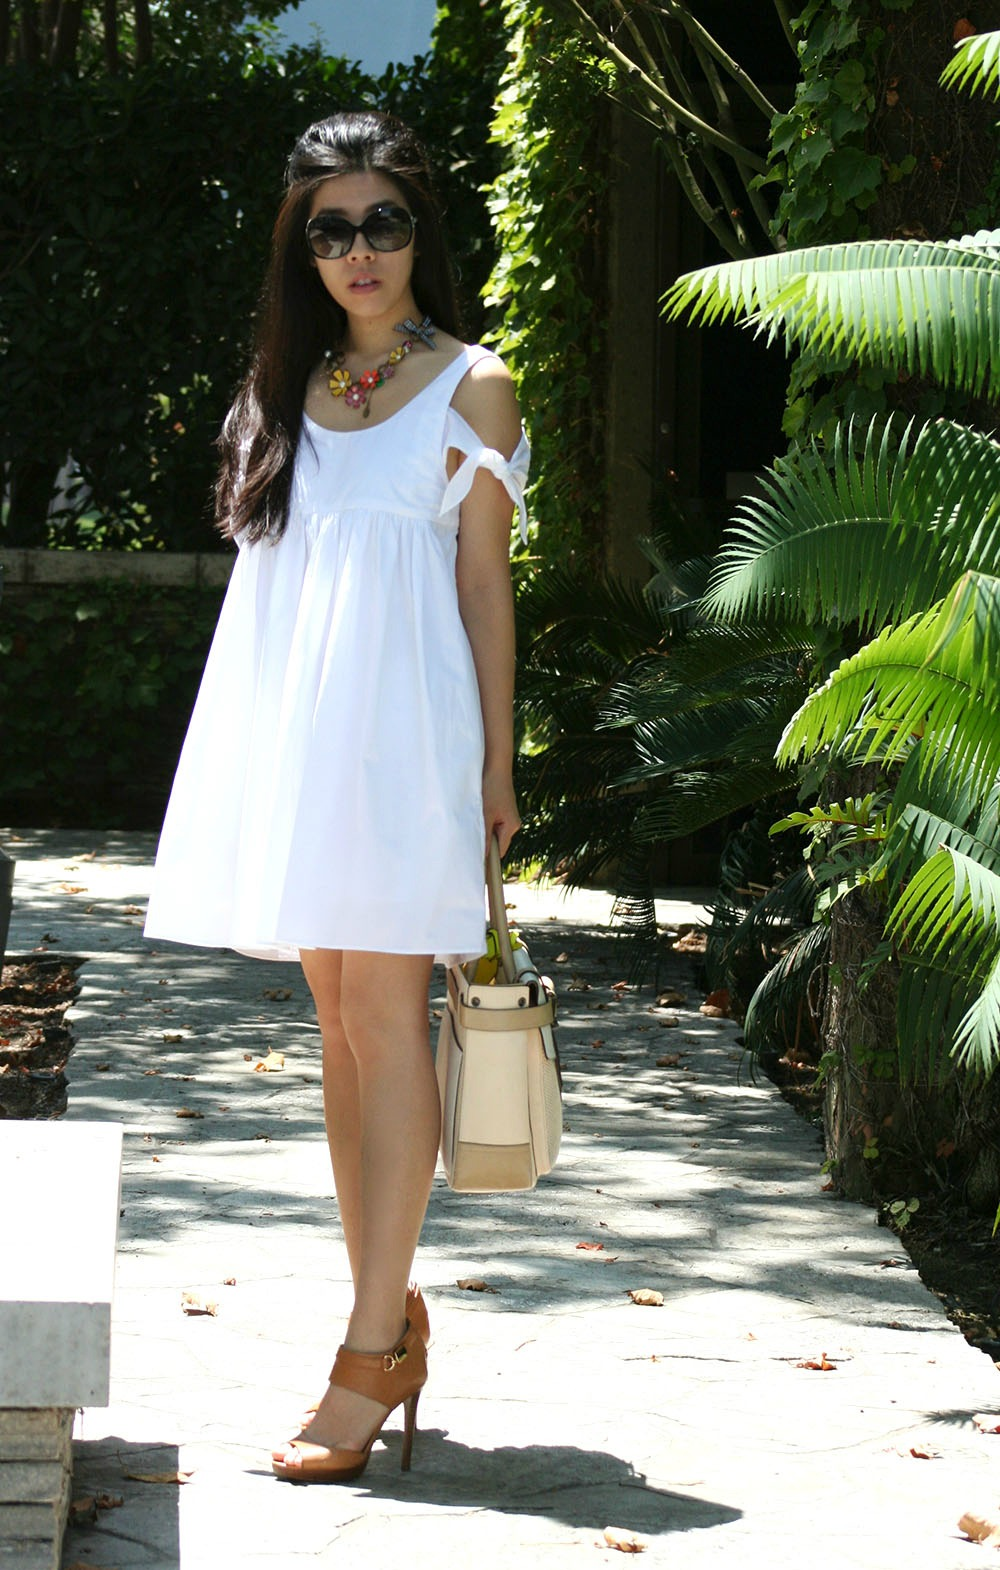 Adrienne Nguyen_Invictus_Summer Style_Easy Summer Fashion_What to Wear to a Picnic